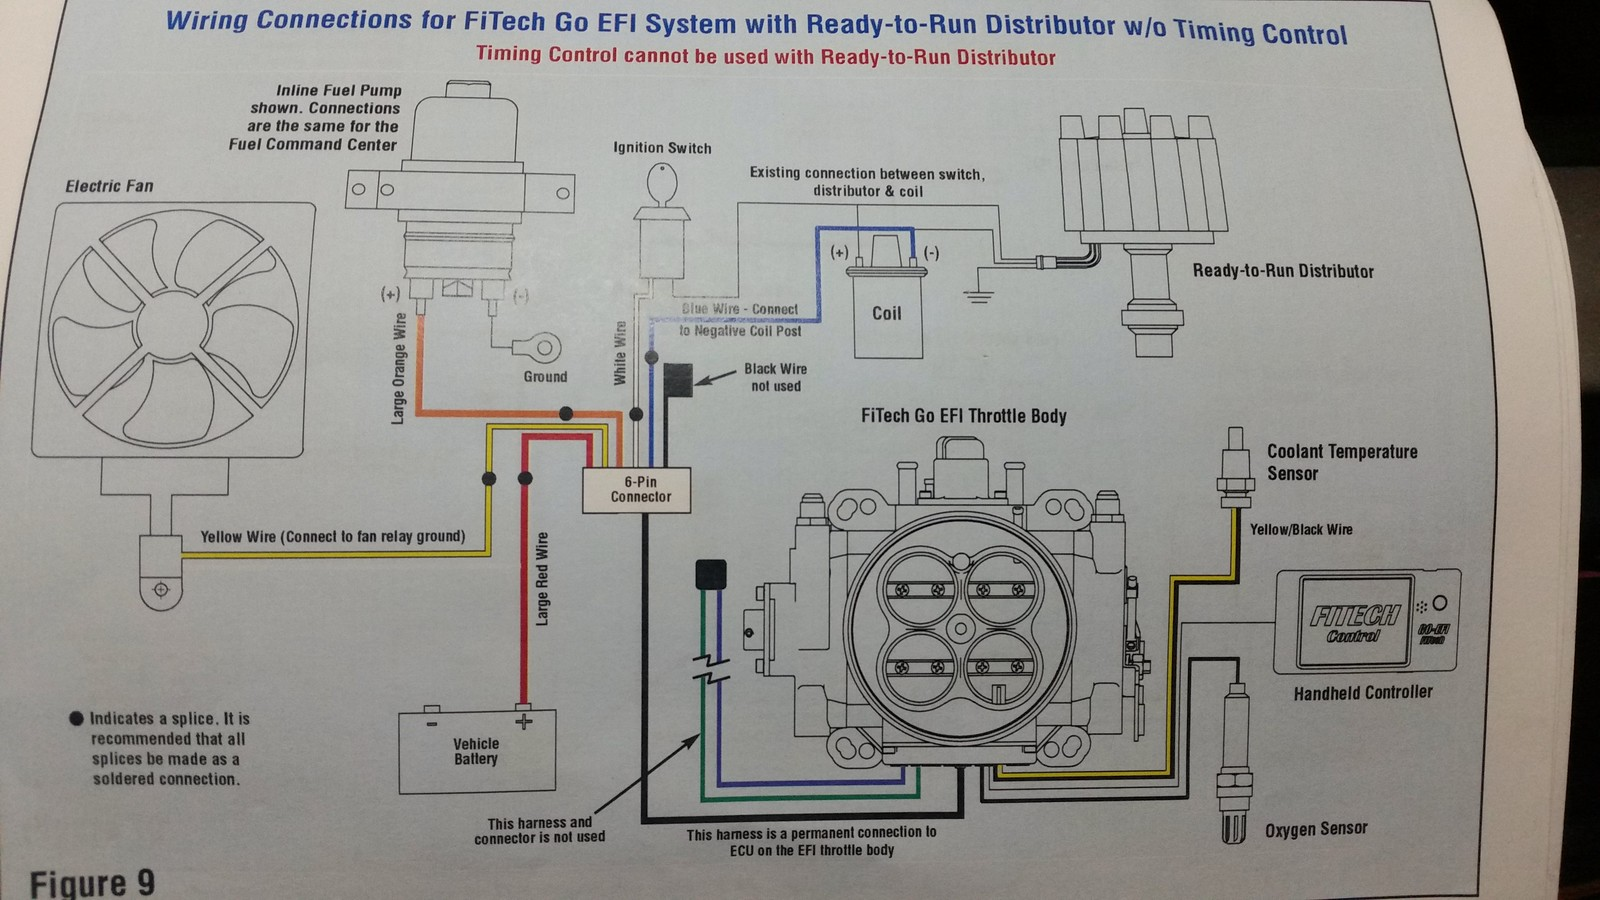 fitech wiring diagram   21 wiring diagram images